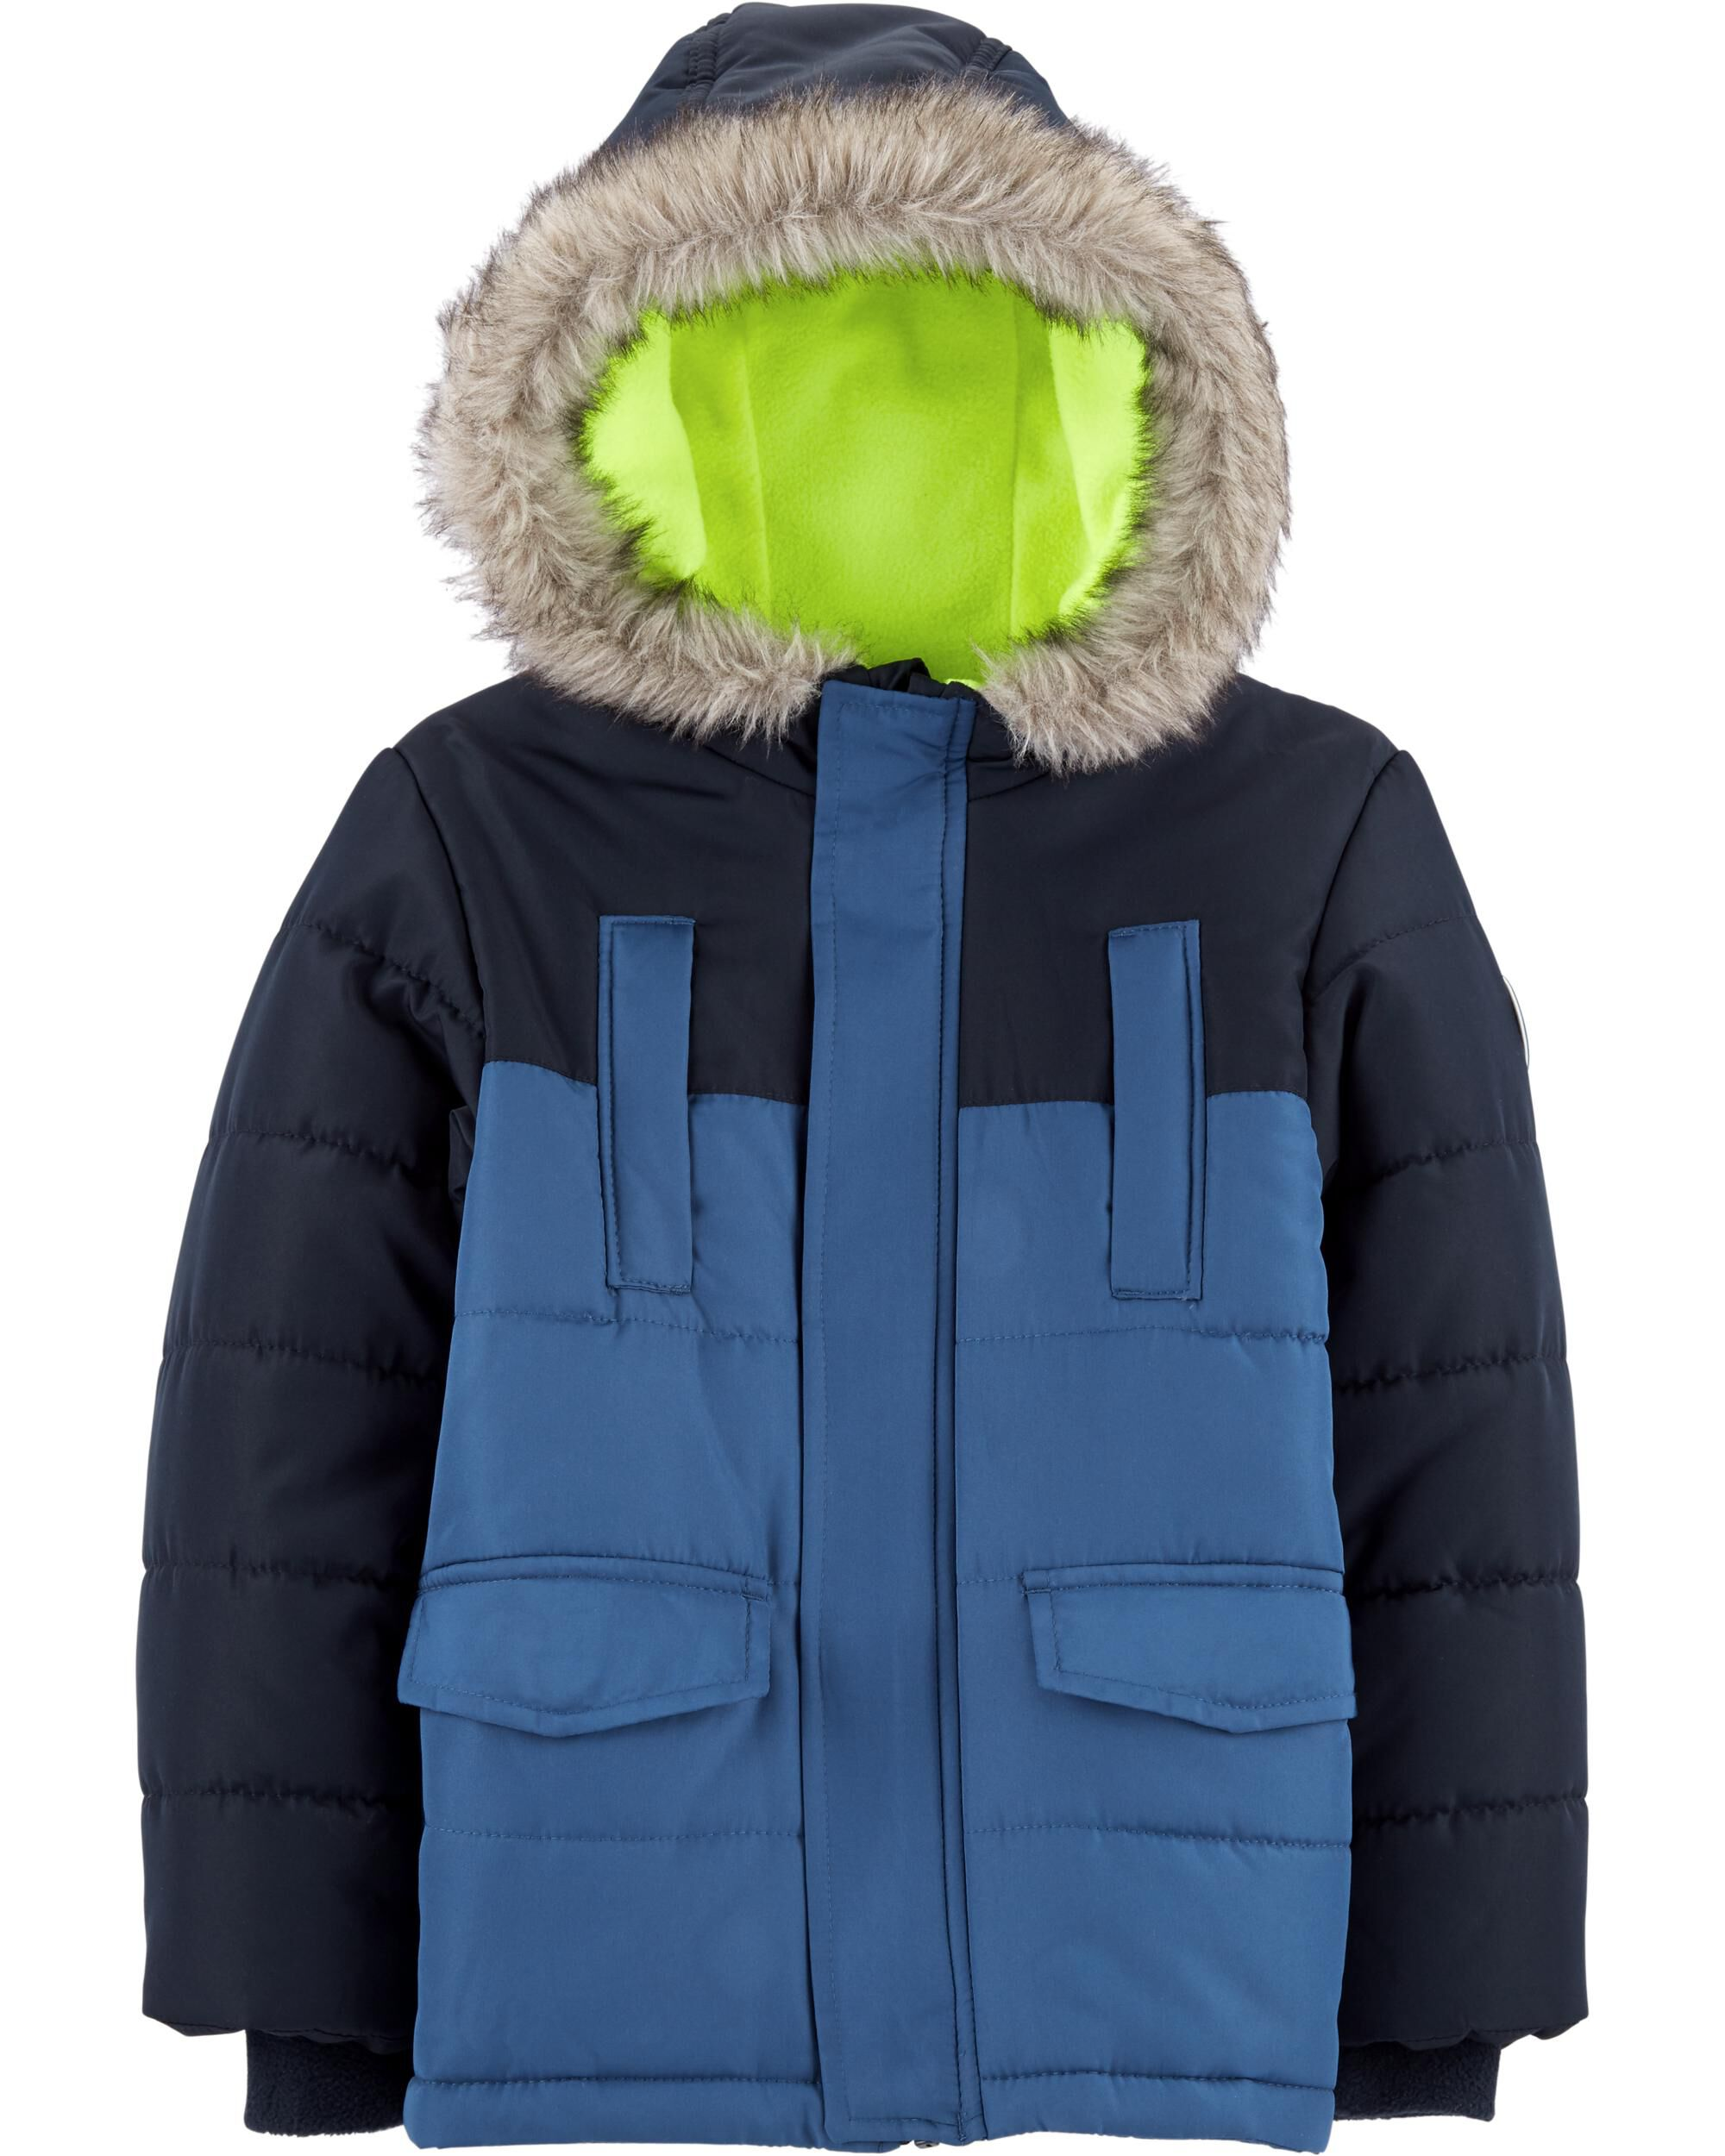 OshKosh BGosh Baby Girls Pretty Cool Parka Jacket